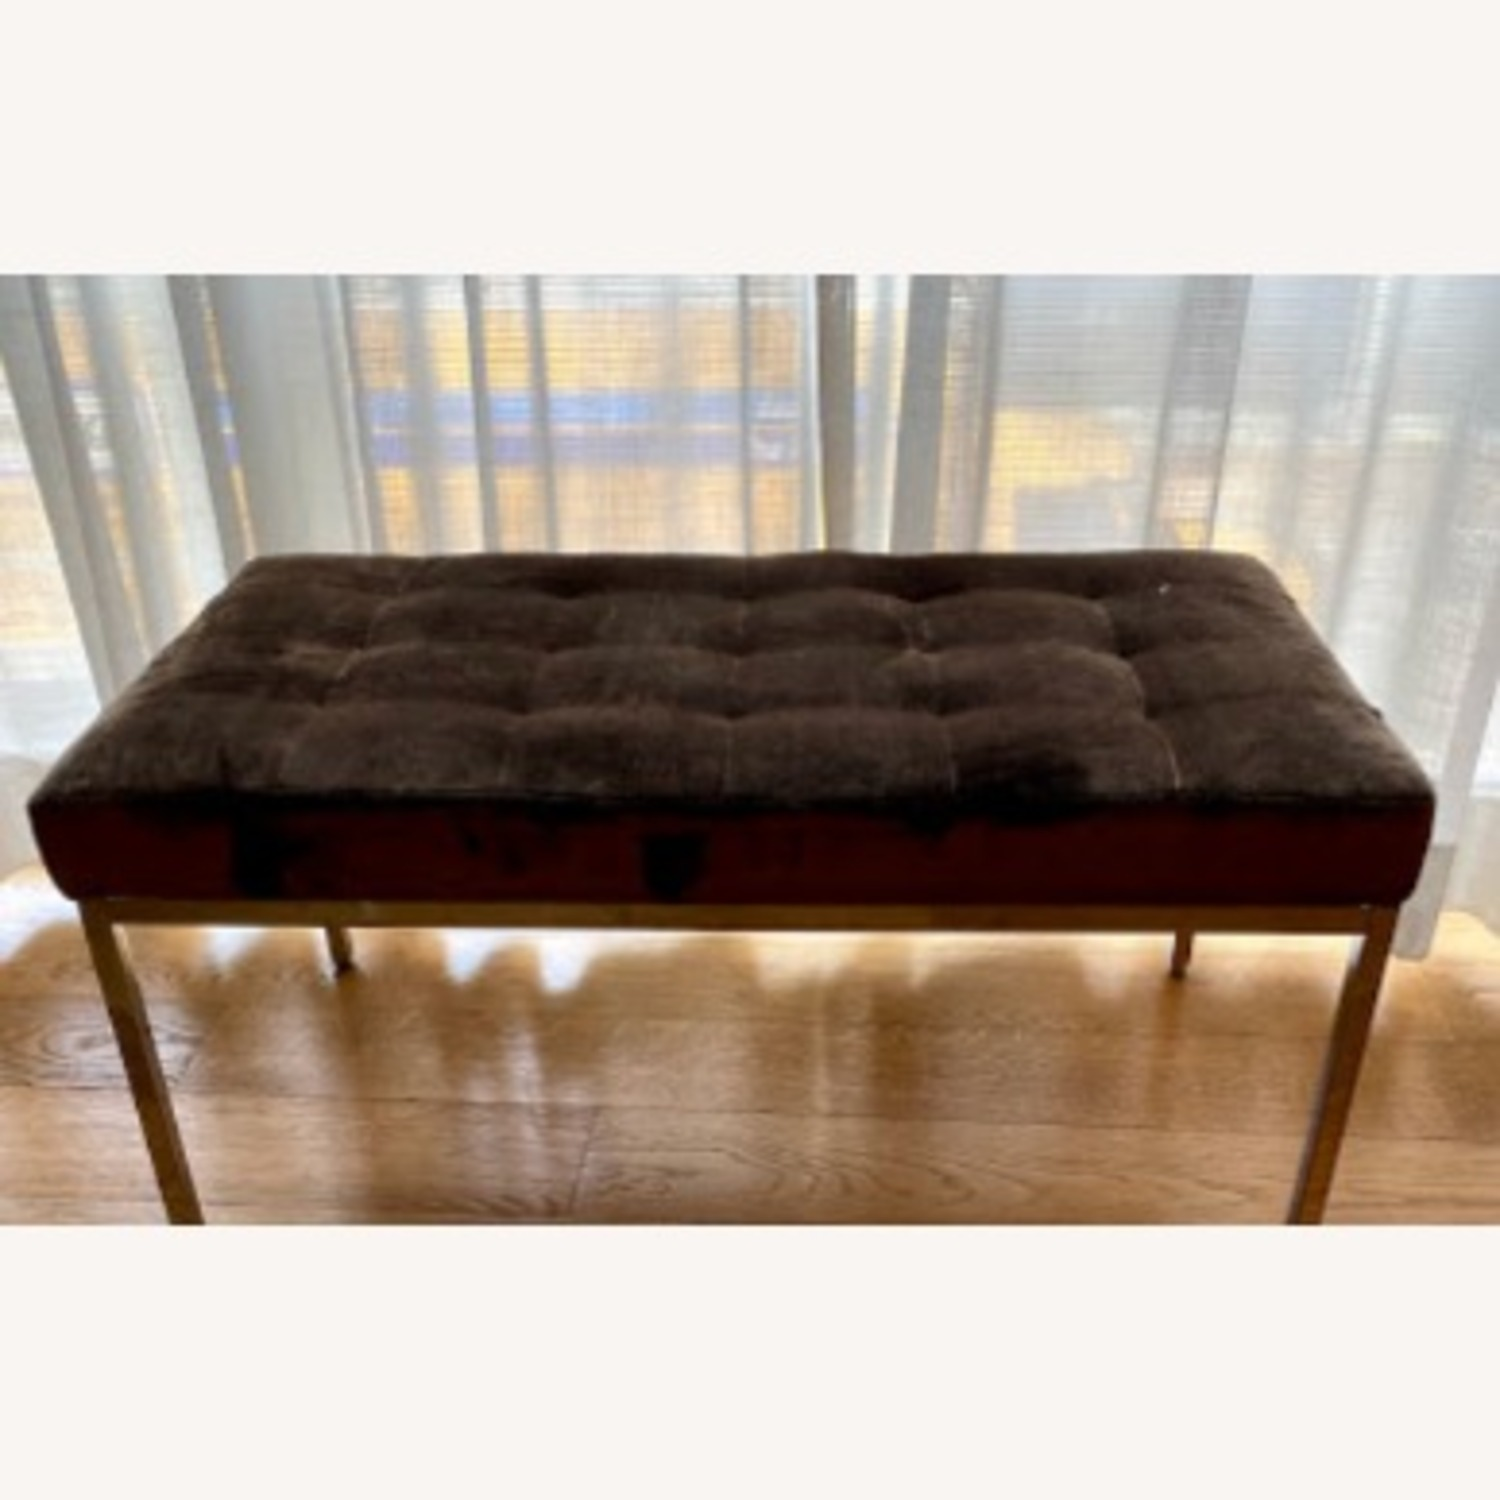 Knoll Bronze Florence Bench - image-2